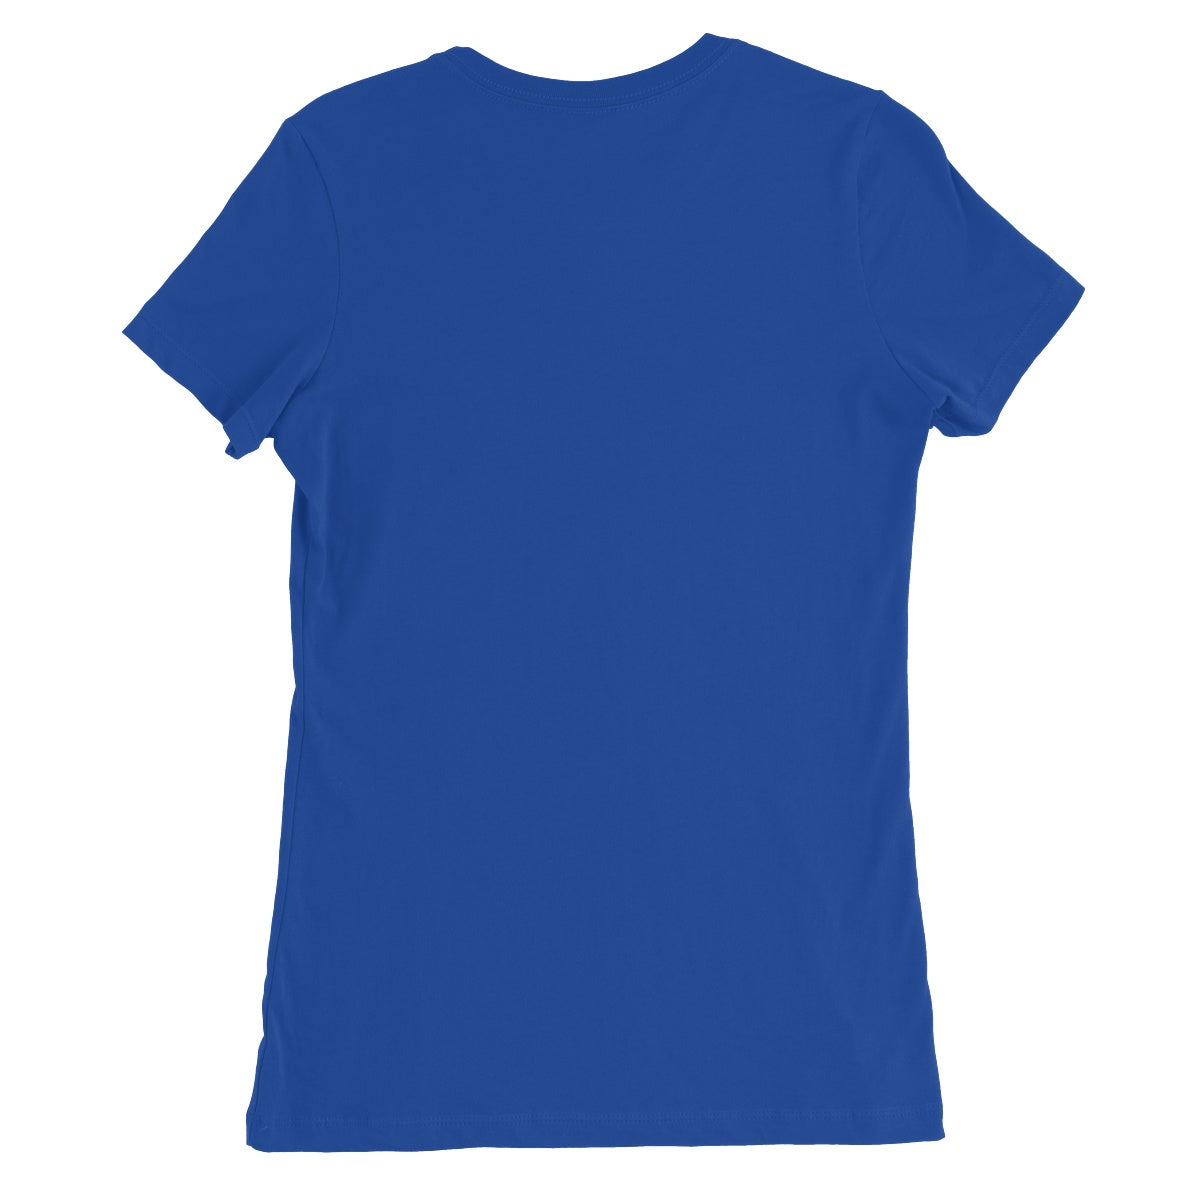 Femme Bleue 'Avoir de L'admiration' Women's Favourite T-Shirt